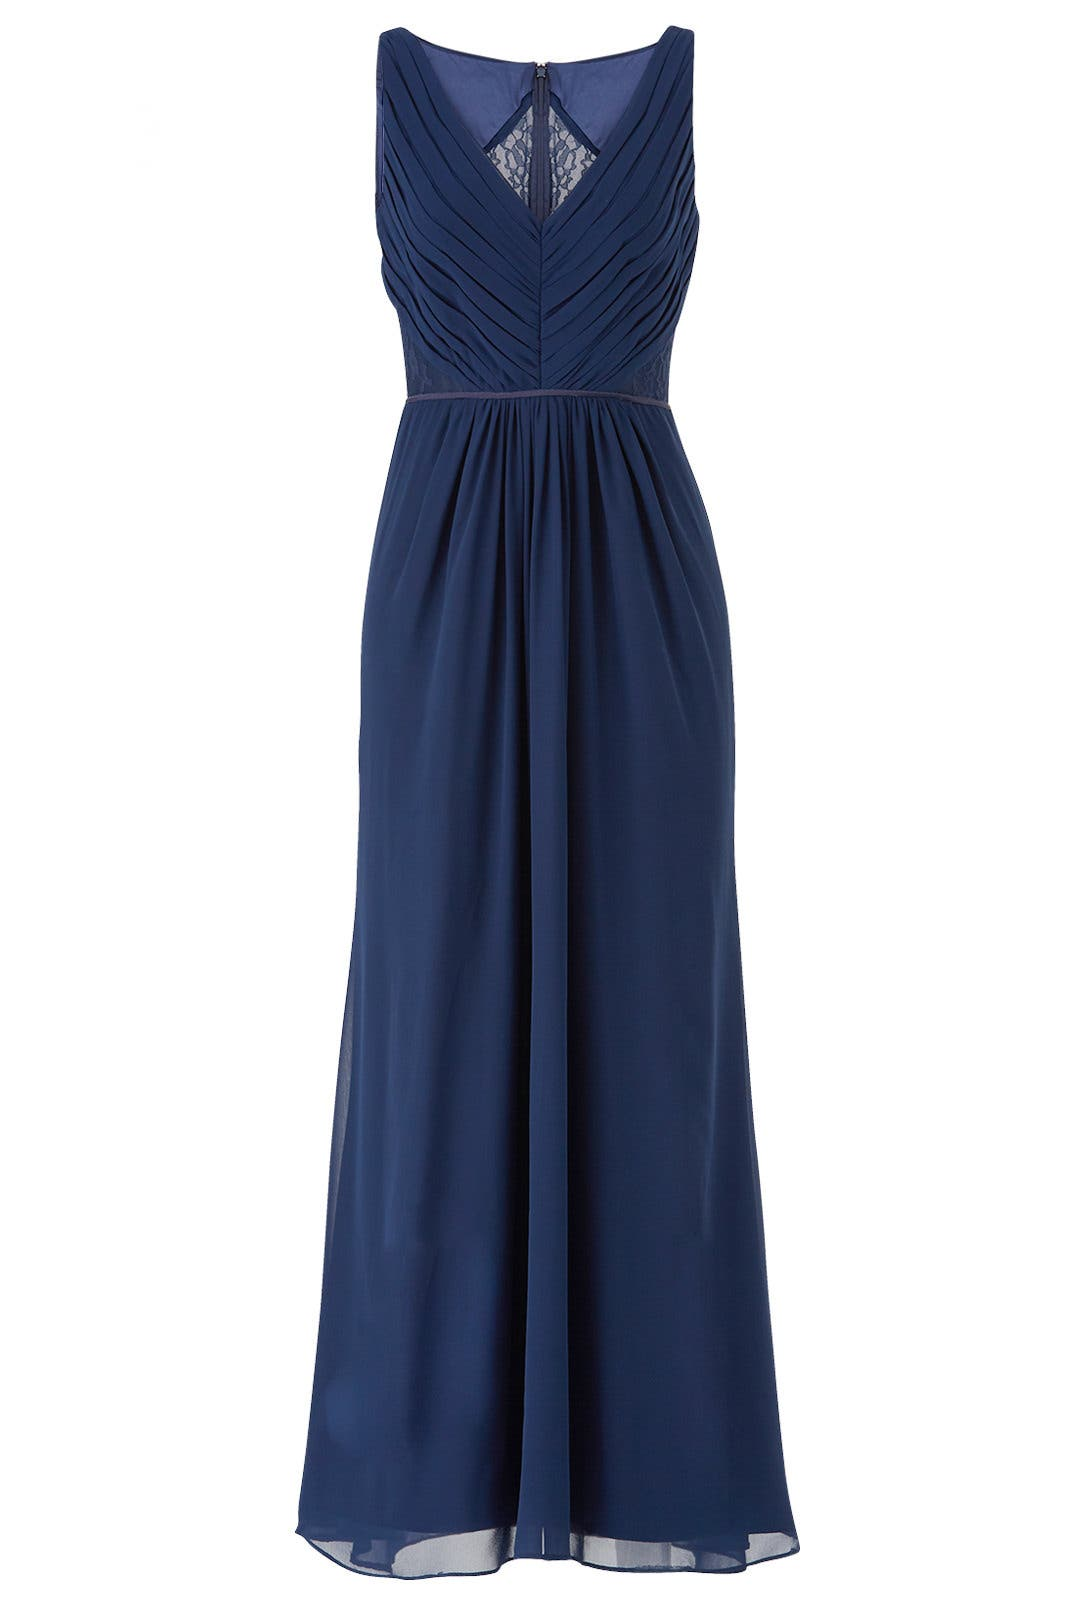 c4e23d74ade Navy Amelia Gown by Monique Lhuillier for  50